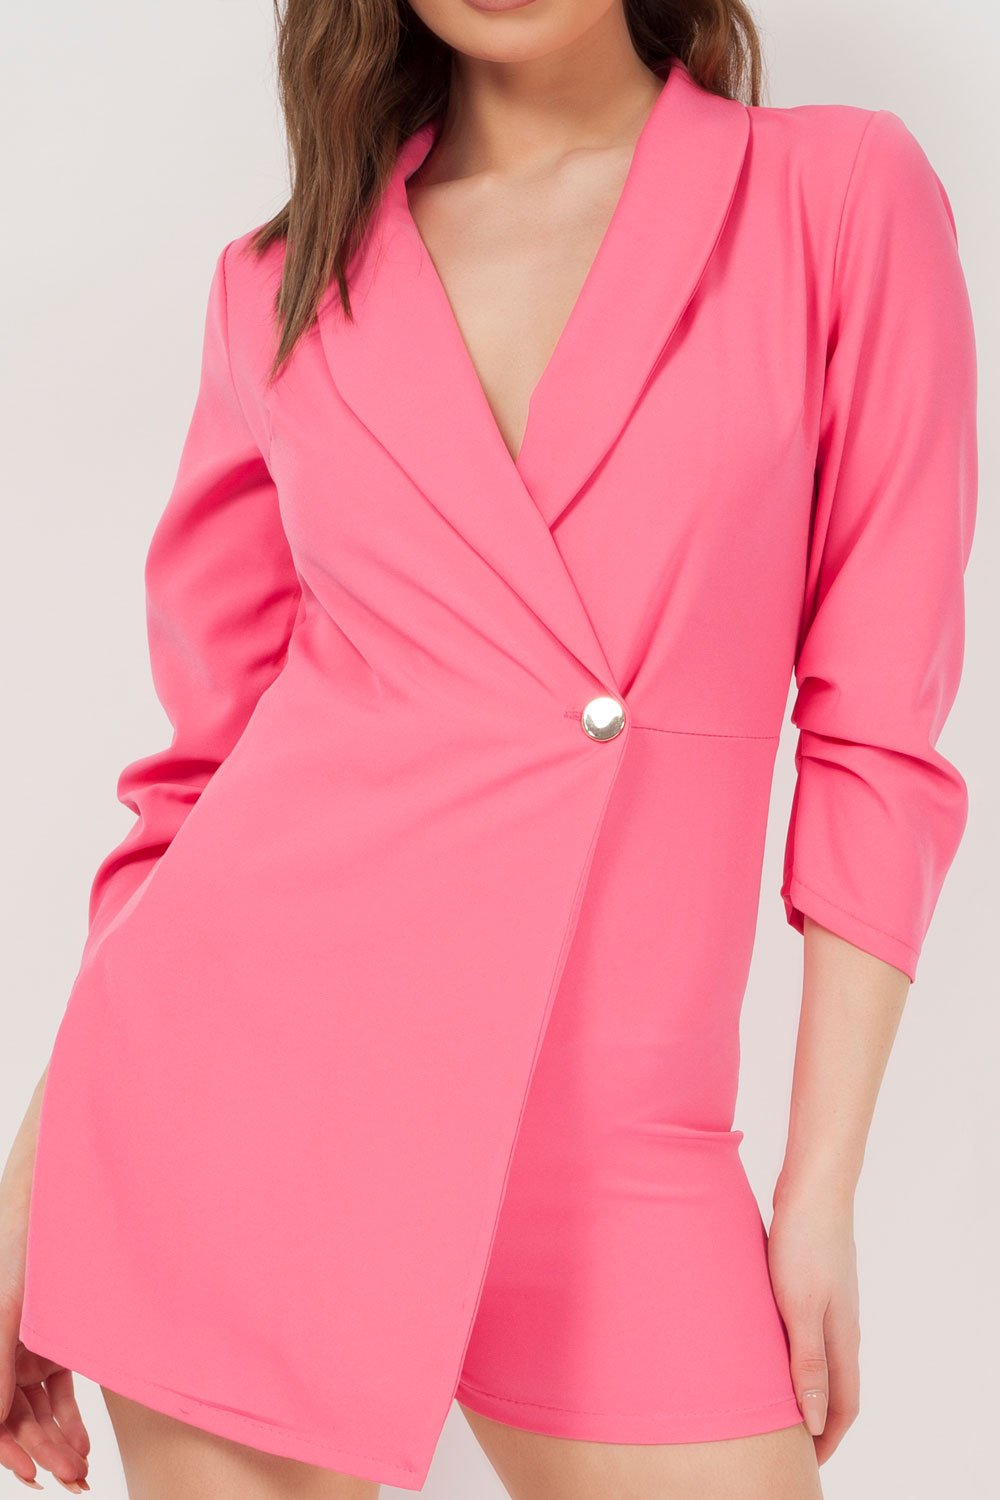 ab2155cab1d going out playsuit pink uk. wrap playsuit pink uk. pink blazer playsuit uk